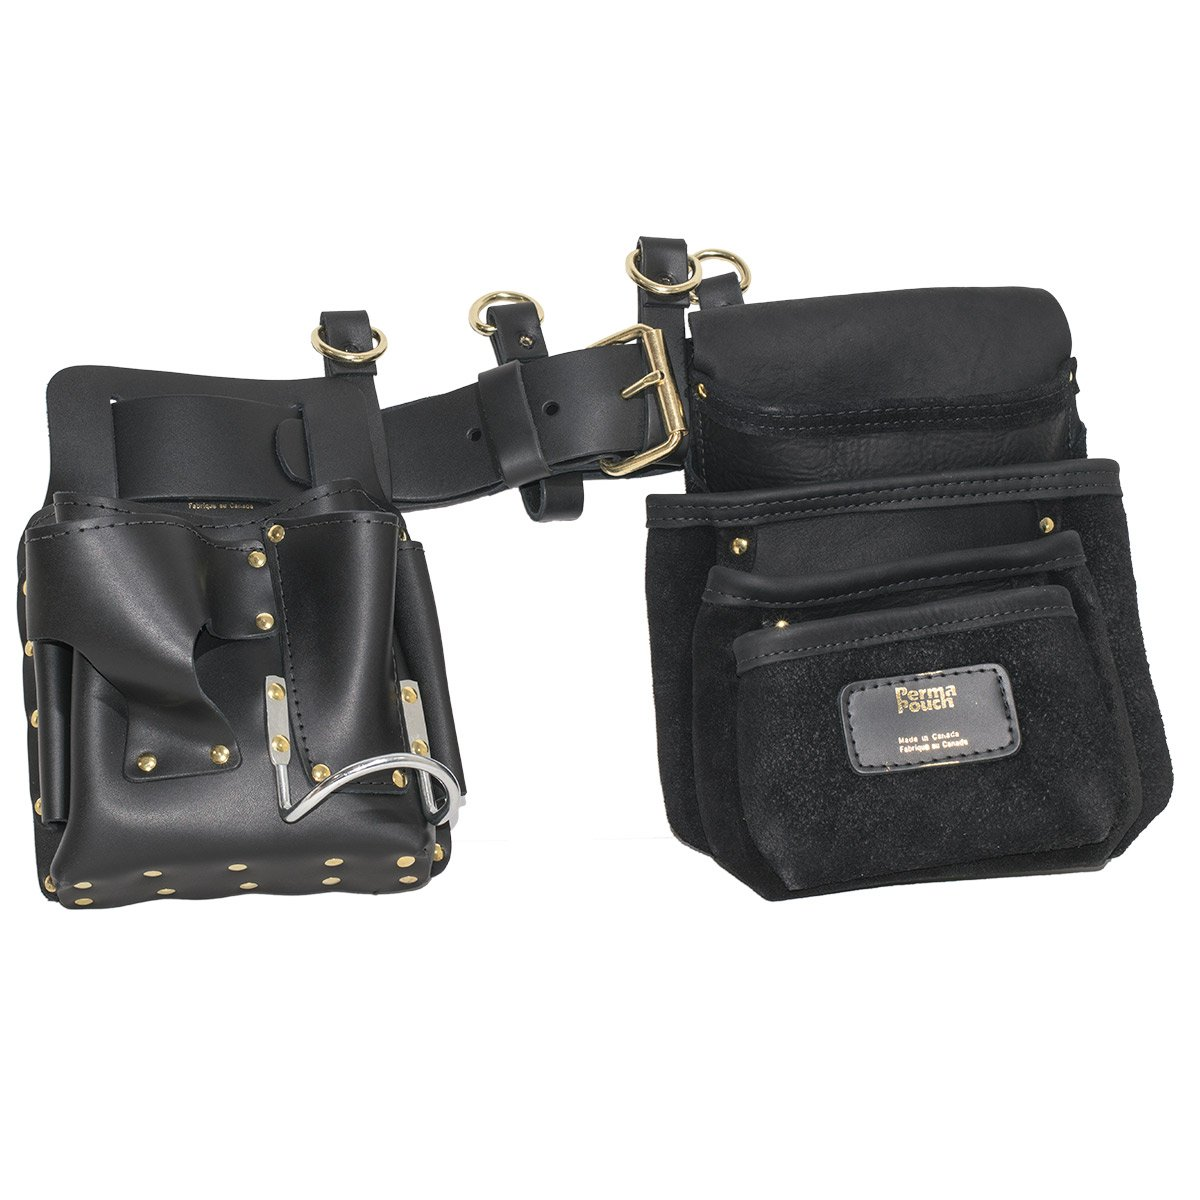 Drywaller's Complete Leather Adjustable Complete Tool Belt with Pouches and Suspender Loops